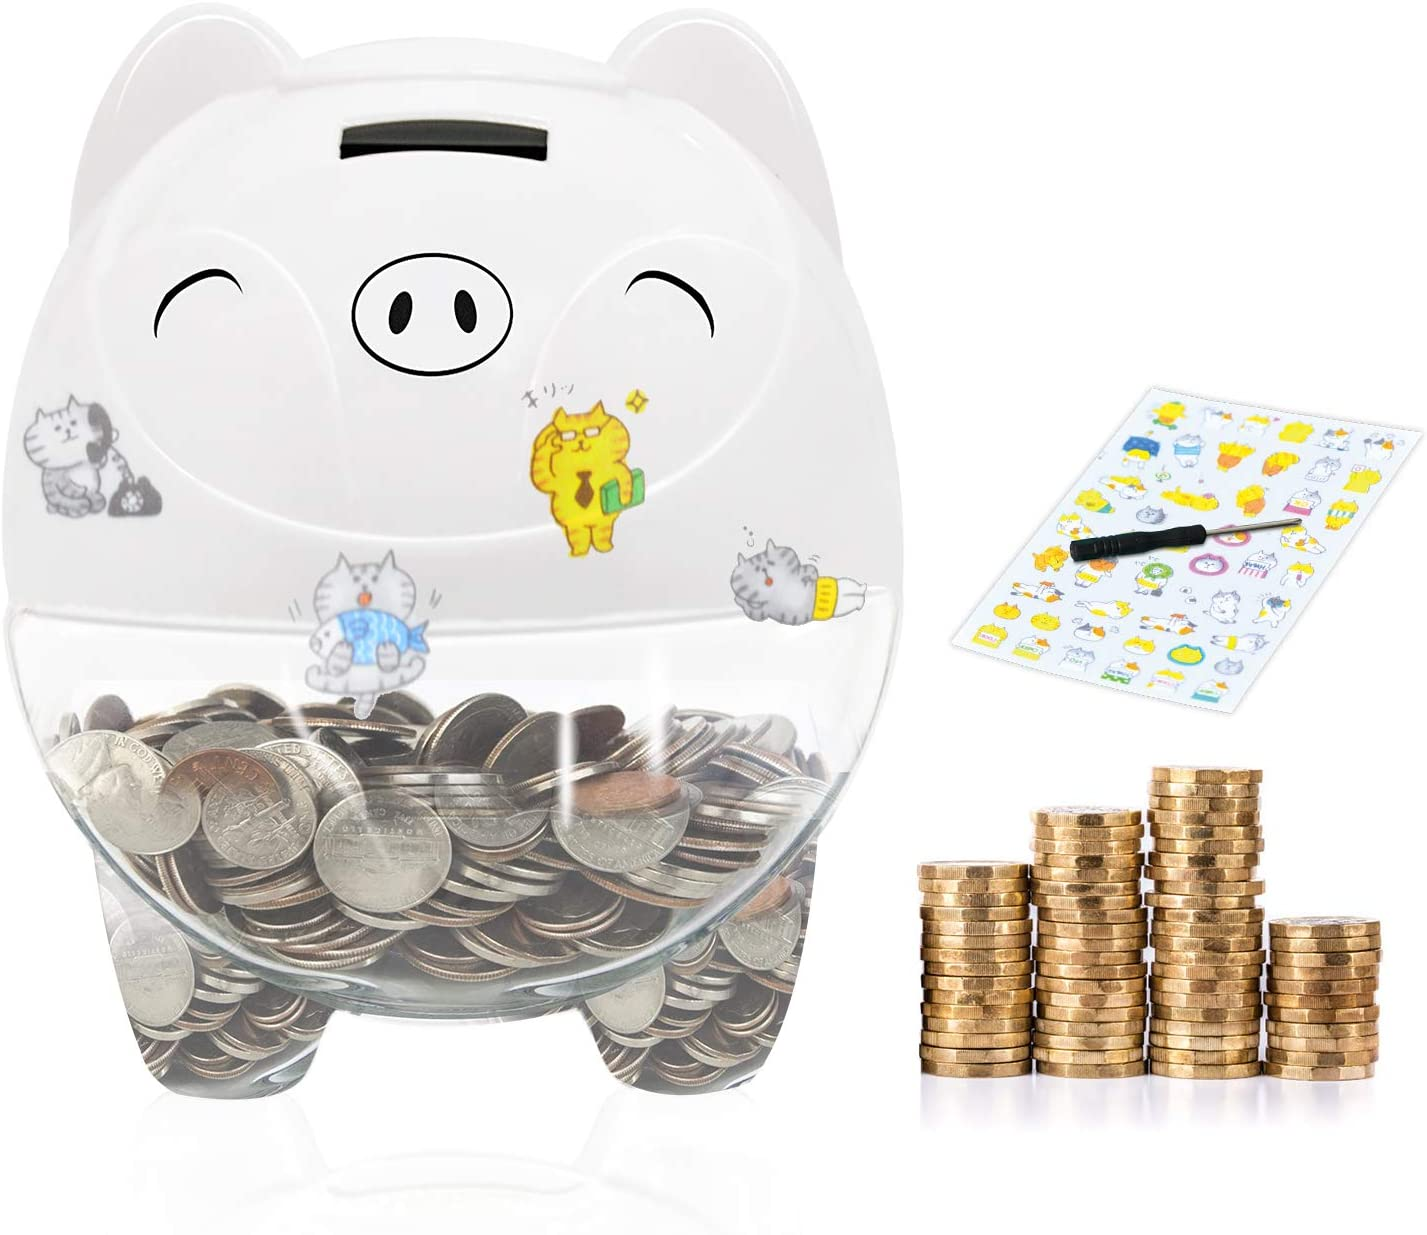 MOMMED Digital Coin Bank Money Jar Birthday and New Year Piggy Bank Automatic Coin Counter for Kids Adults Boys Girls as Gift on Christmas Piggy Bank with LCD Display